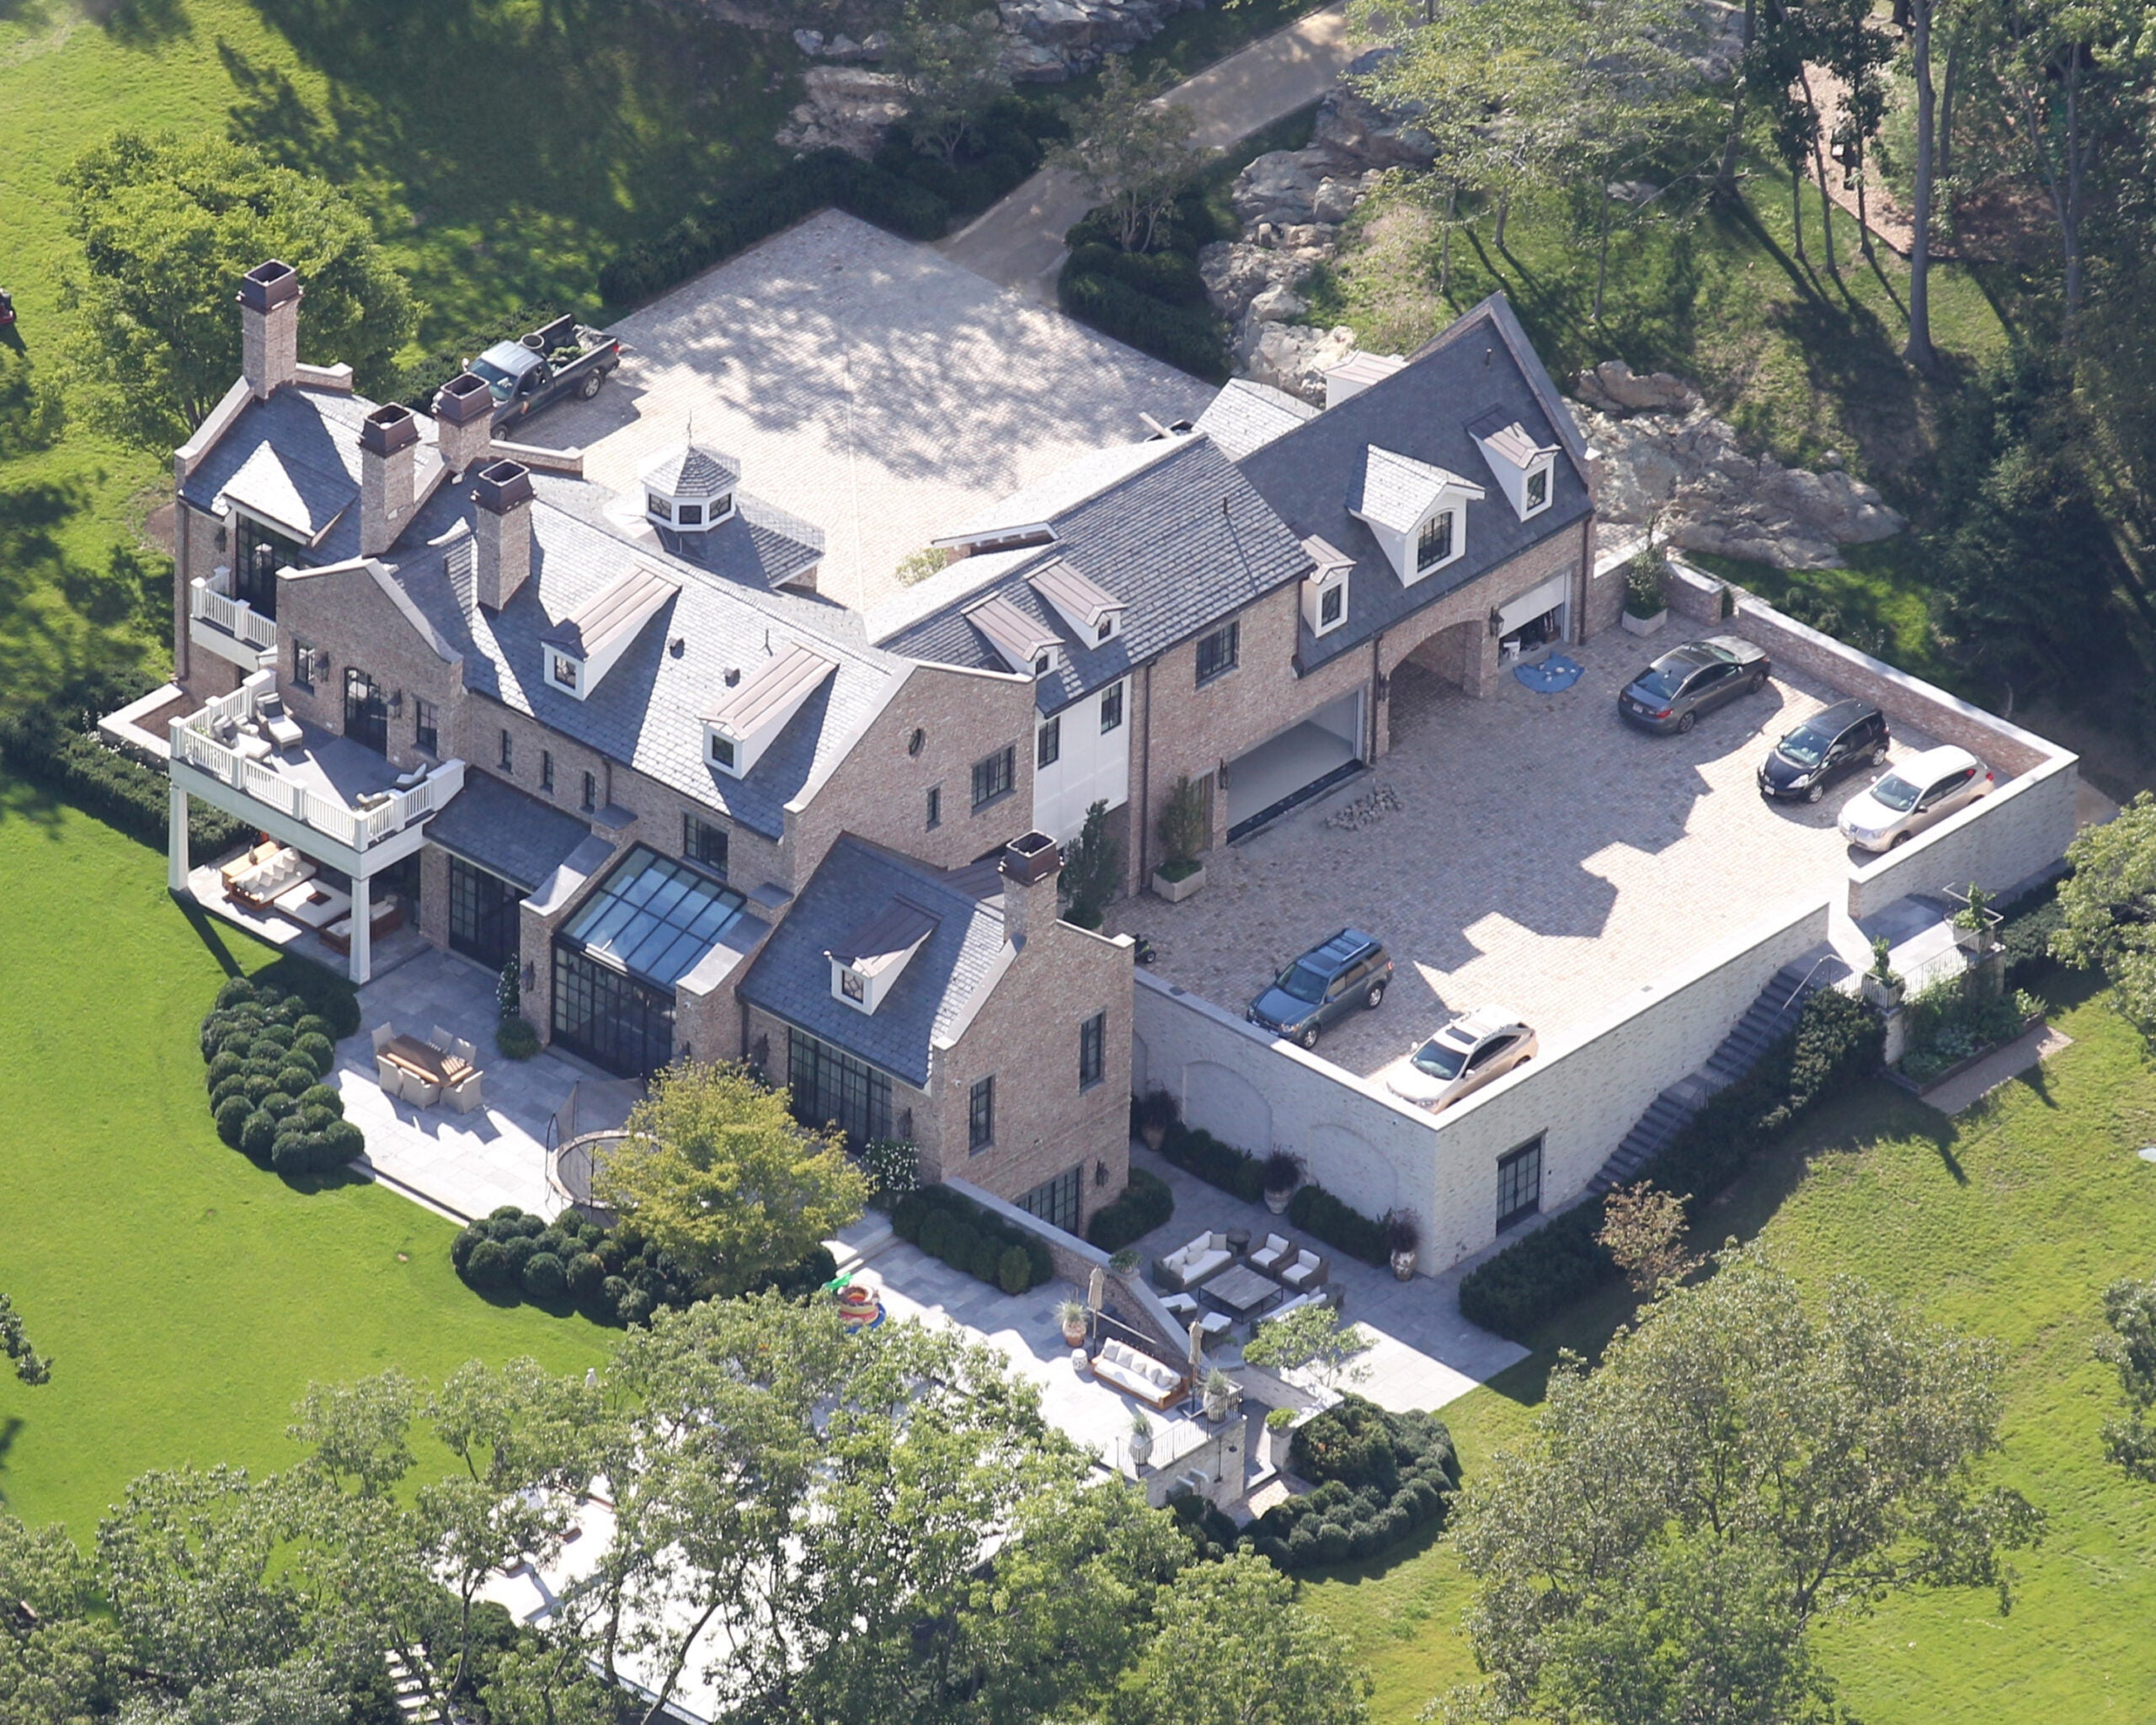 Is Tom Brady house-hunting in Connecticut and New Jersey?